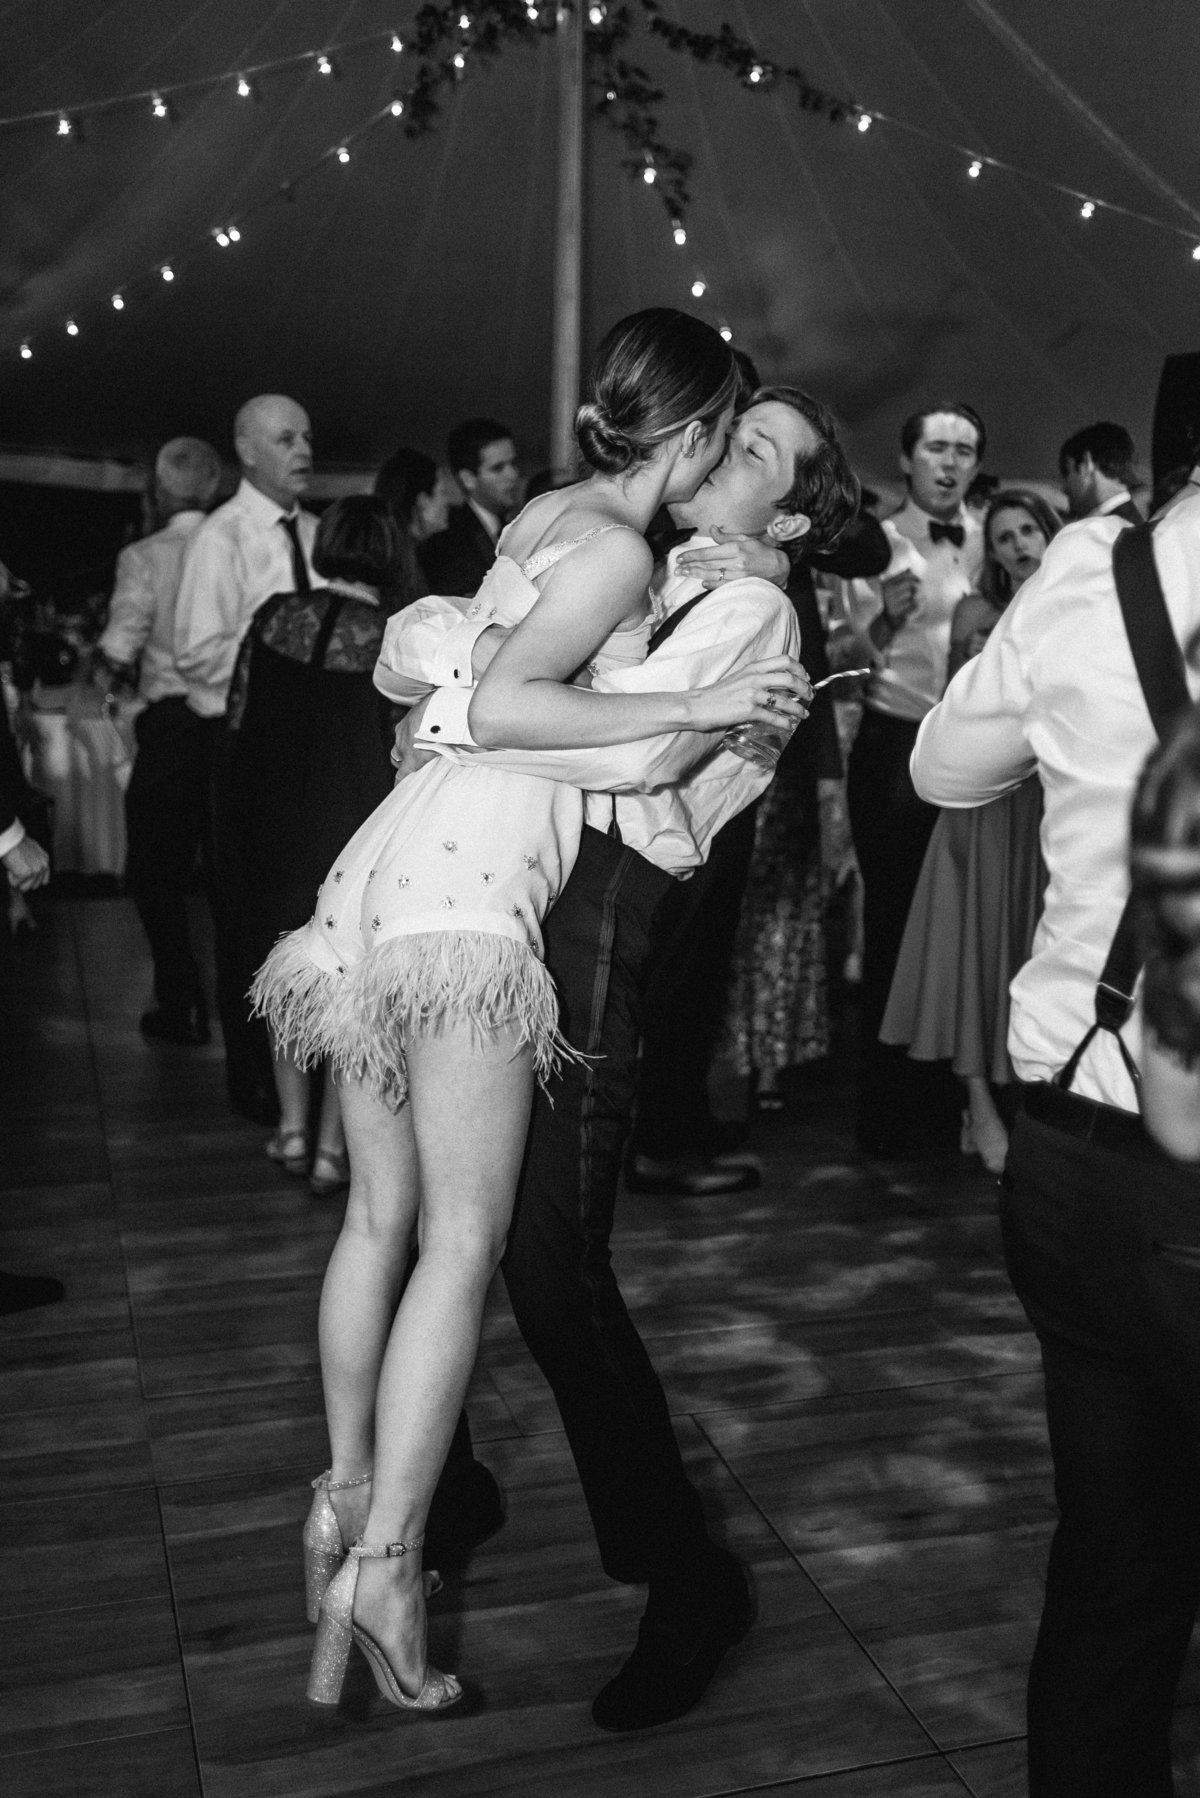 20190830-Pura-Soul-Photo-Jackson-Hole-Wedding-137